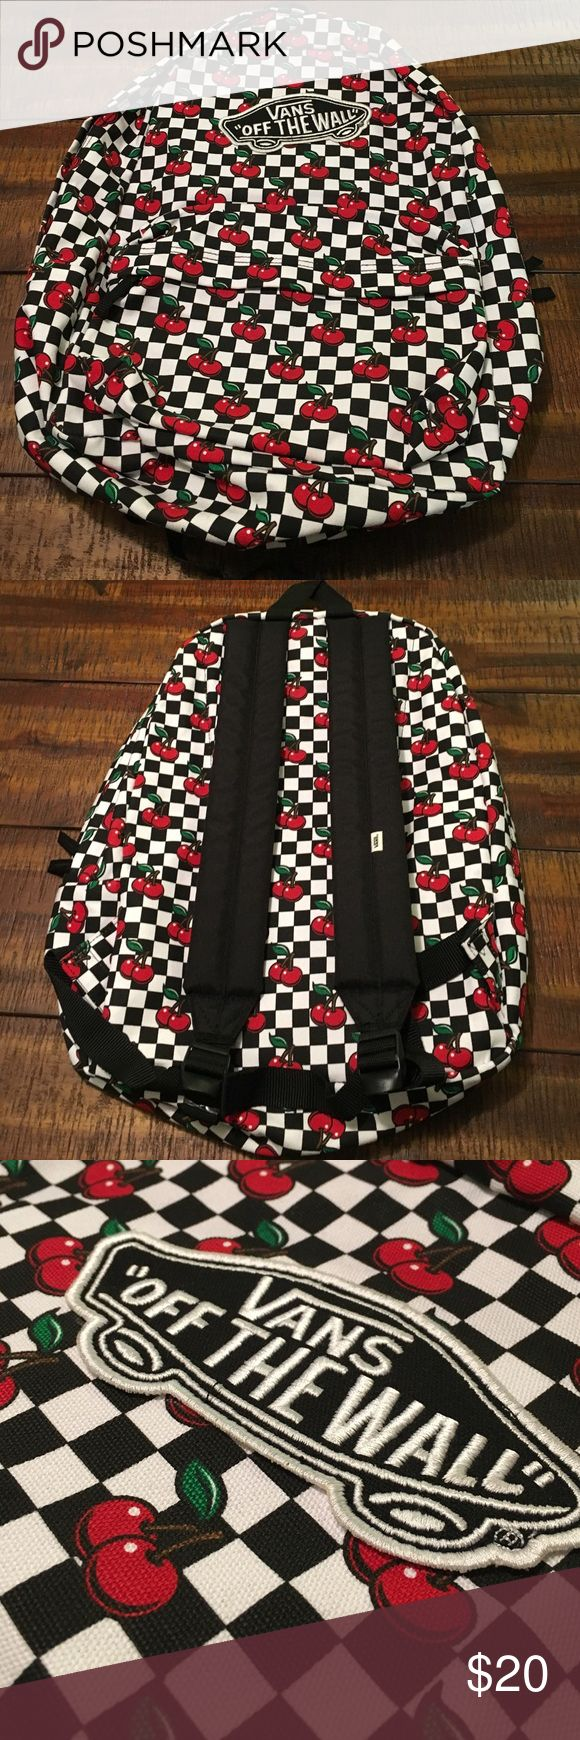 Vans Backpack New without tags.  I removed the tags but it has never been used. It's been stored in a tote in my closet.  Let me know if you have any questions. Xoxo  Vans Bags Backpacks